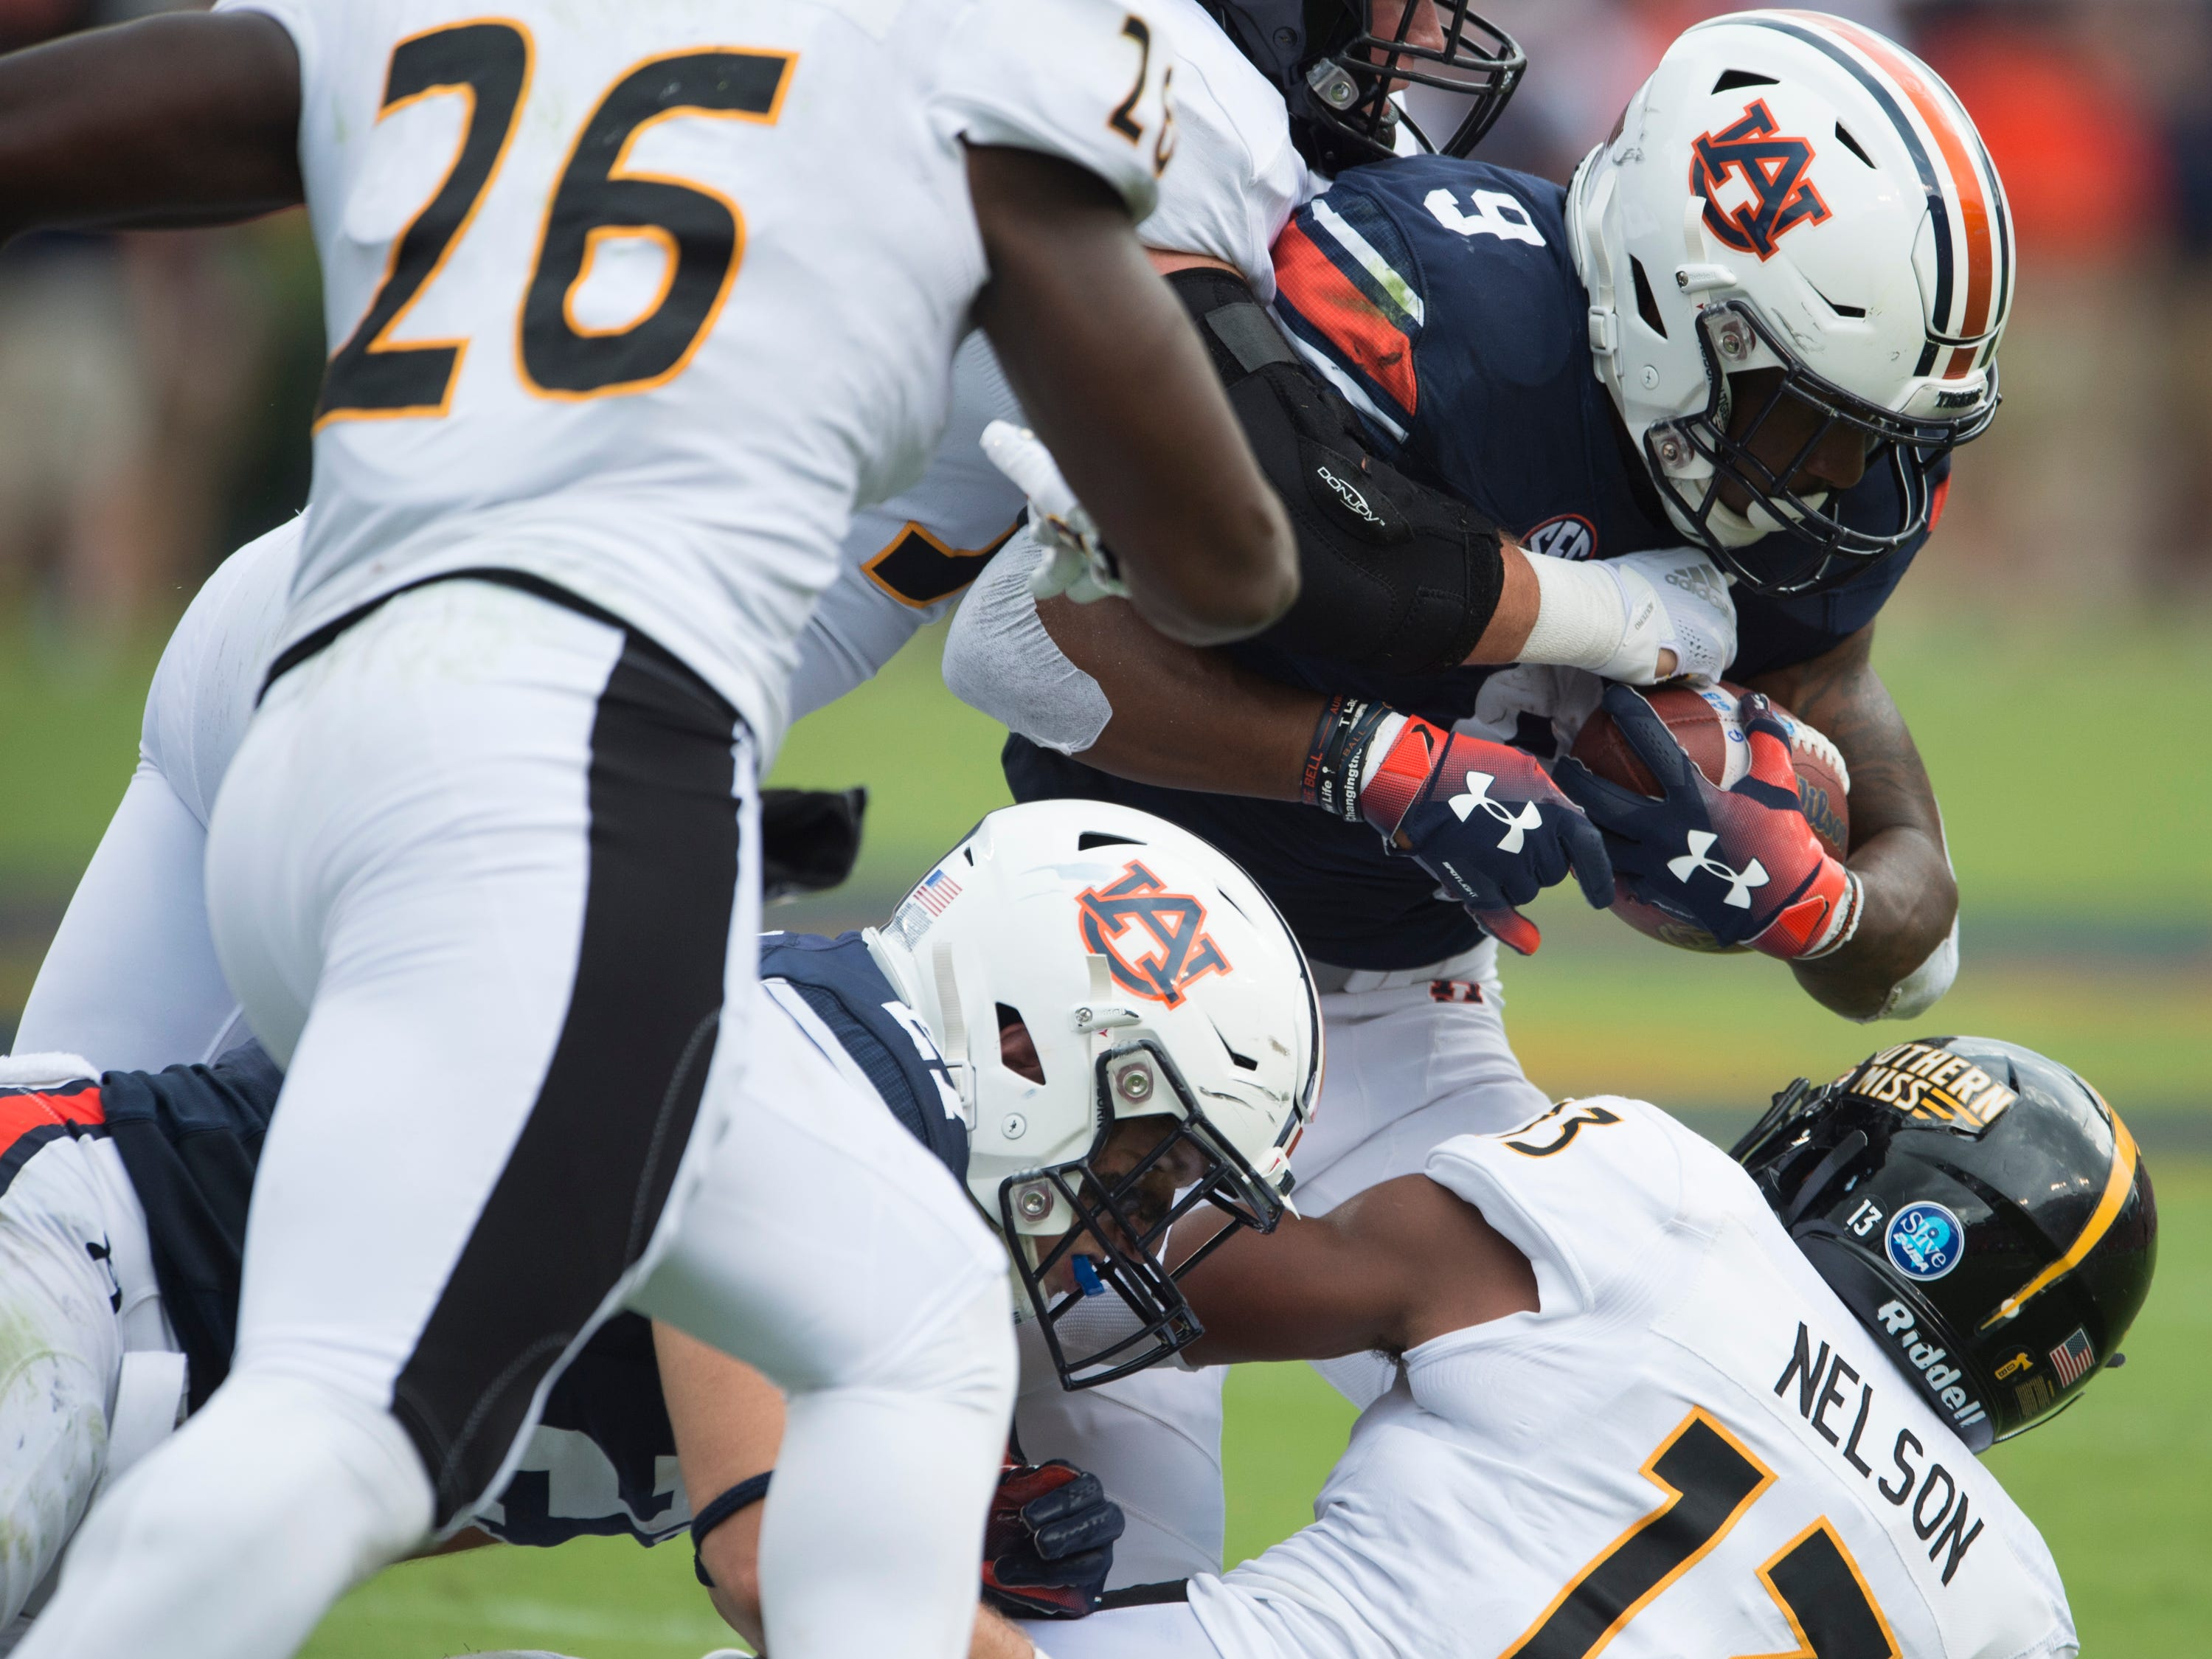 Auburn's Kam Martin (9) is taken down by a swarm of Southern Miss defenders at Jordan-Hare Stadium in Auburn, Ala., on Saturday, Sept. 29, 2018. Auburn leads Southern Miss 14-3, the game went into a weather delay with 4:27 left in the second quarter.